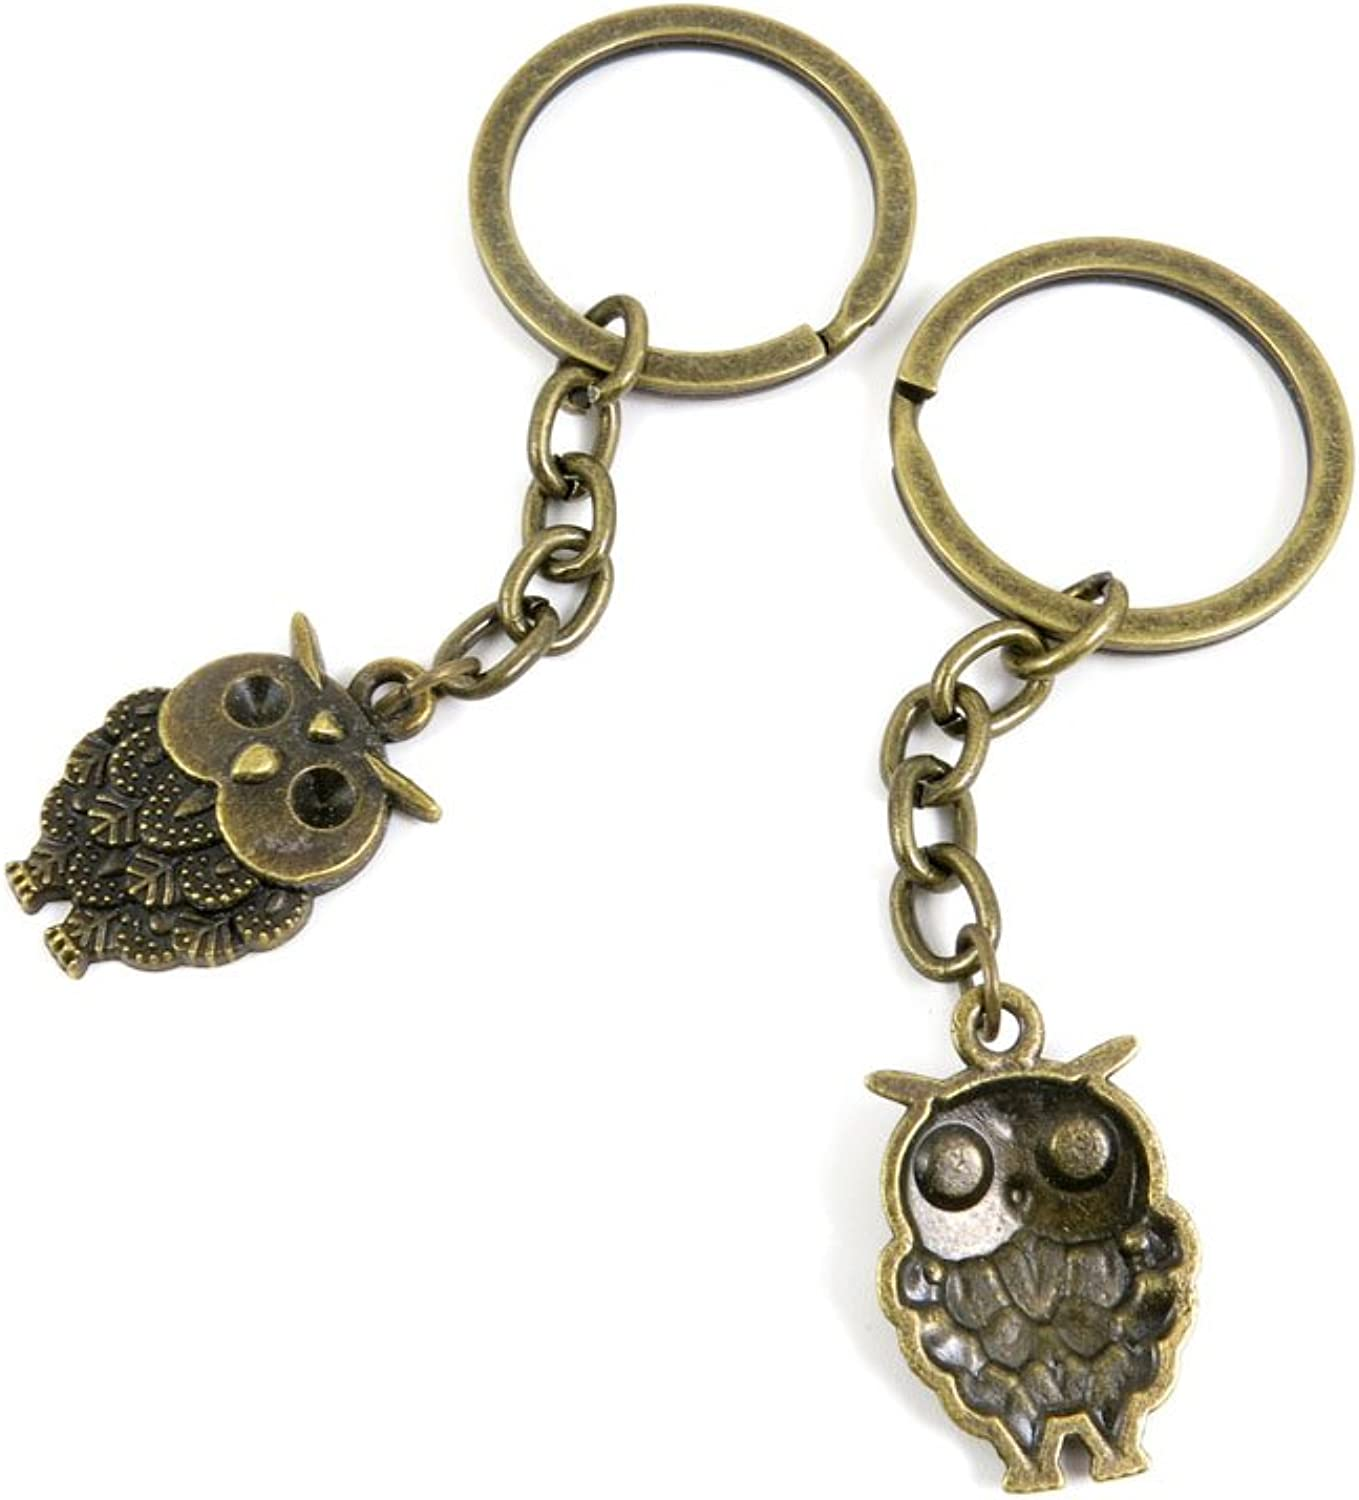 160 Pieces Fashion Jewelry Keyring Keychain Door Car Key Tag Ring Chain Supplier Supply Wholesale Bulk Lots N9ZN8 Owl